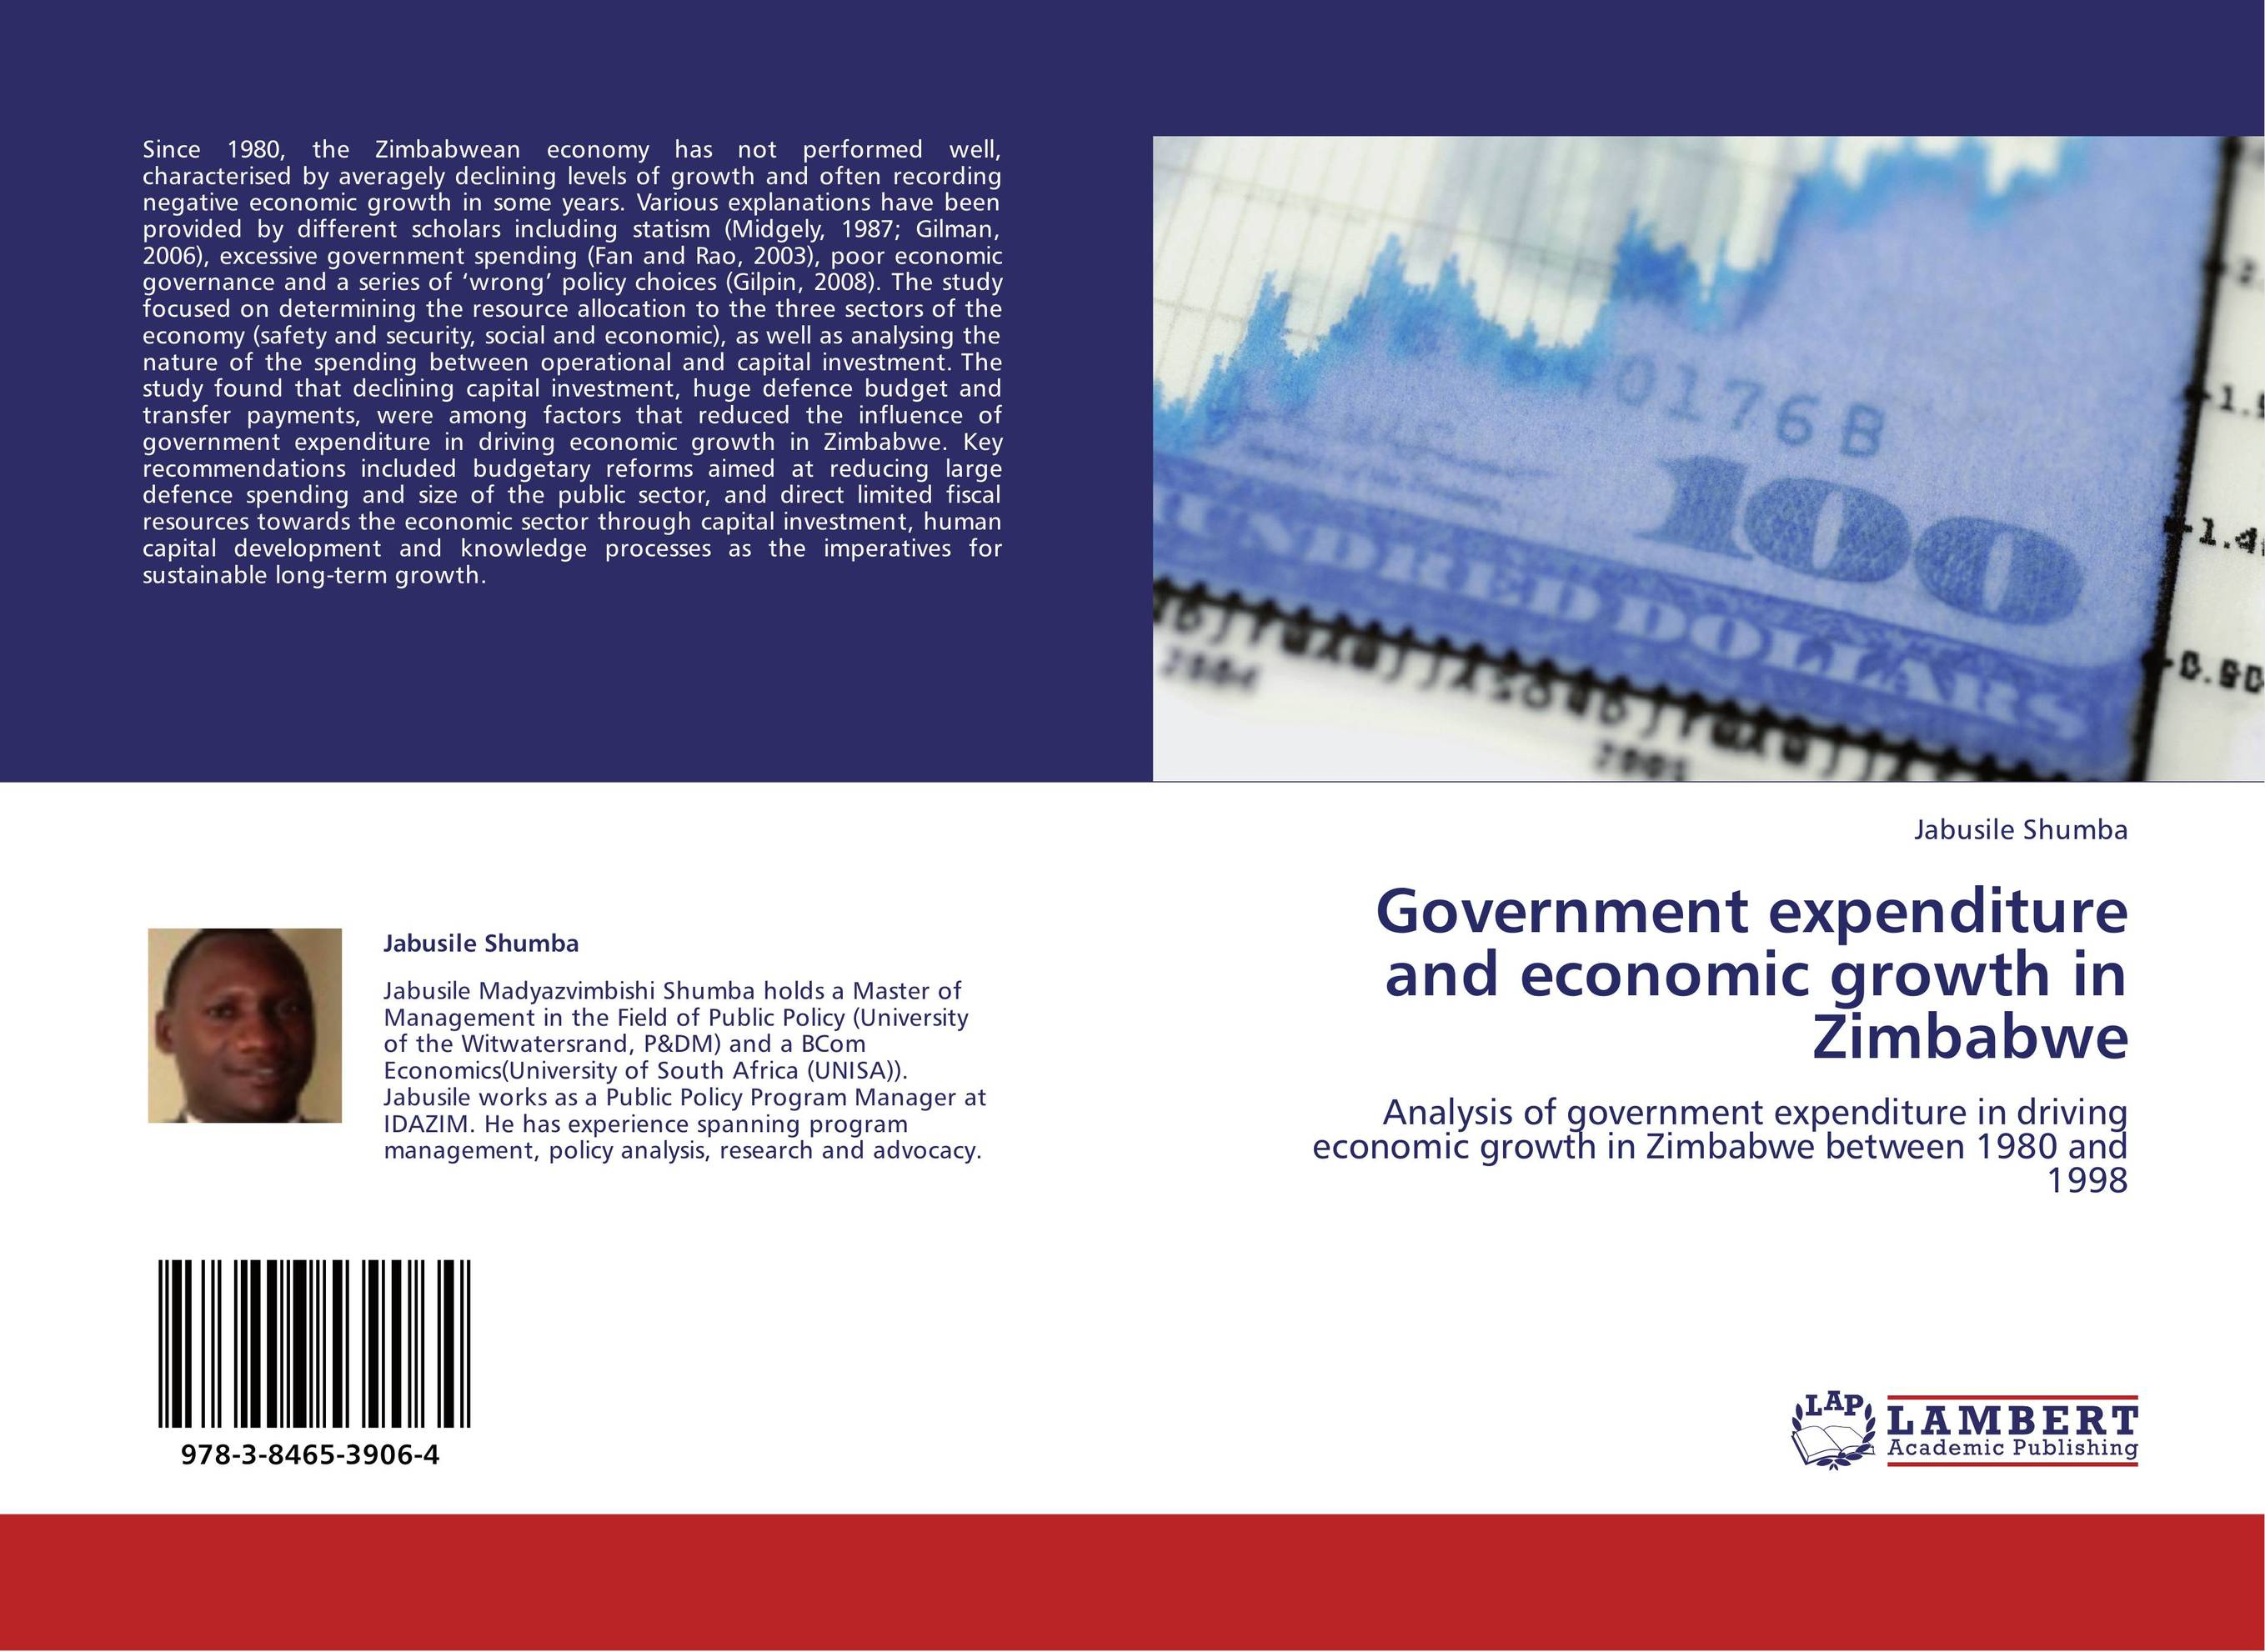 Government expenditure and economic growth in Zimbabwe wesley whittaker a the little book of venture capital investing empowering economic growth and investment portfolios